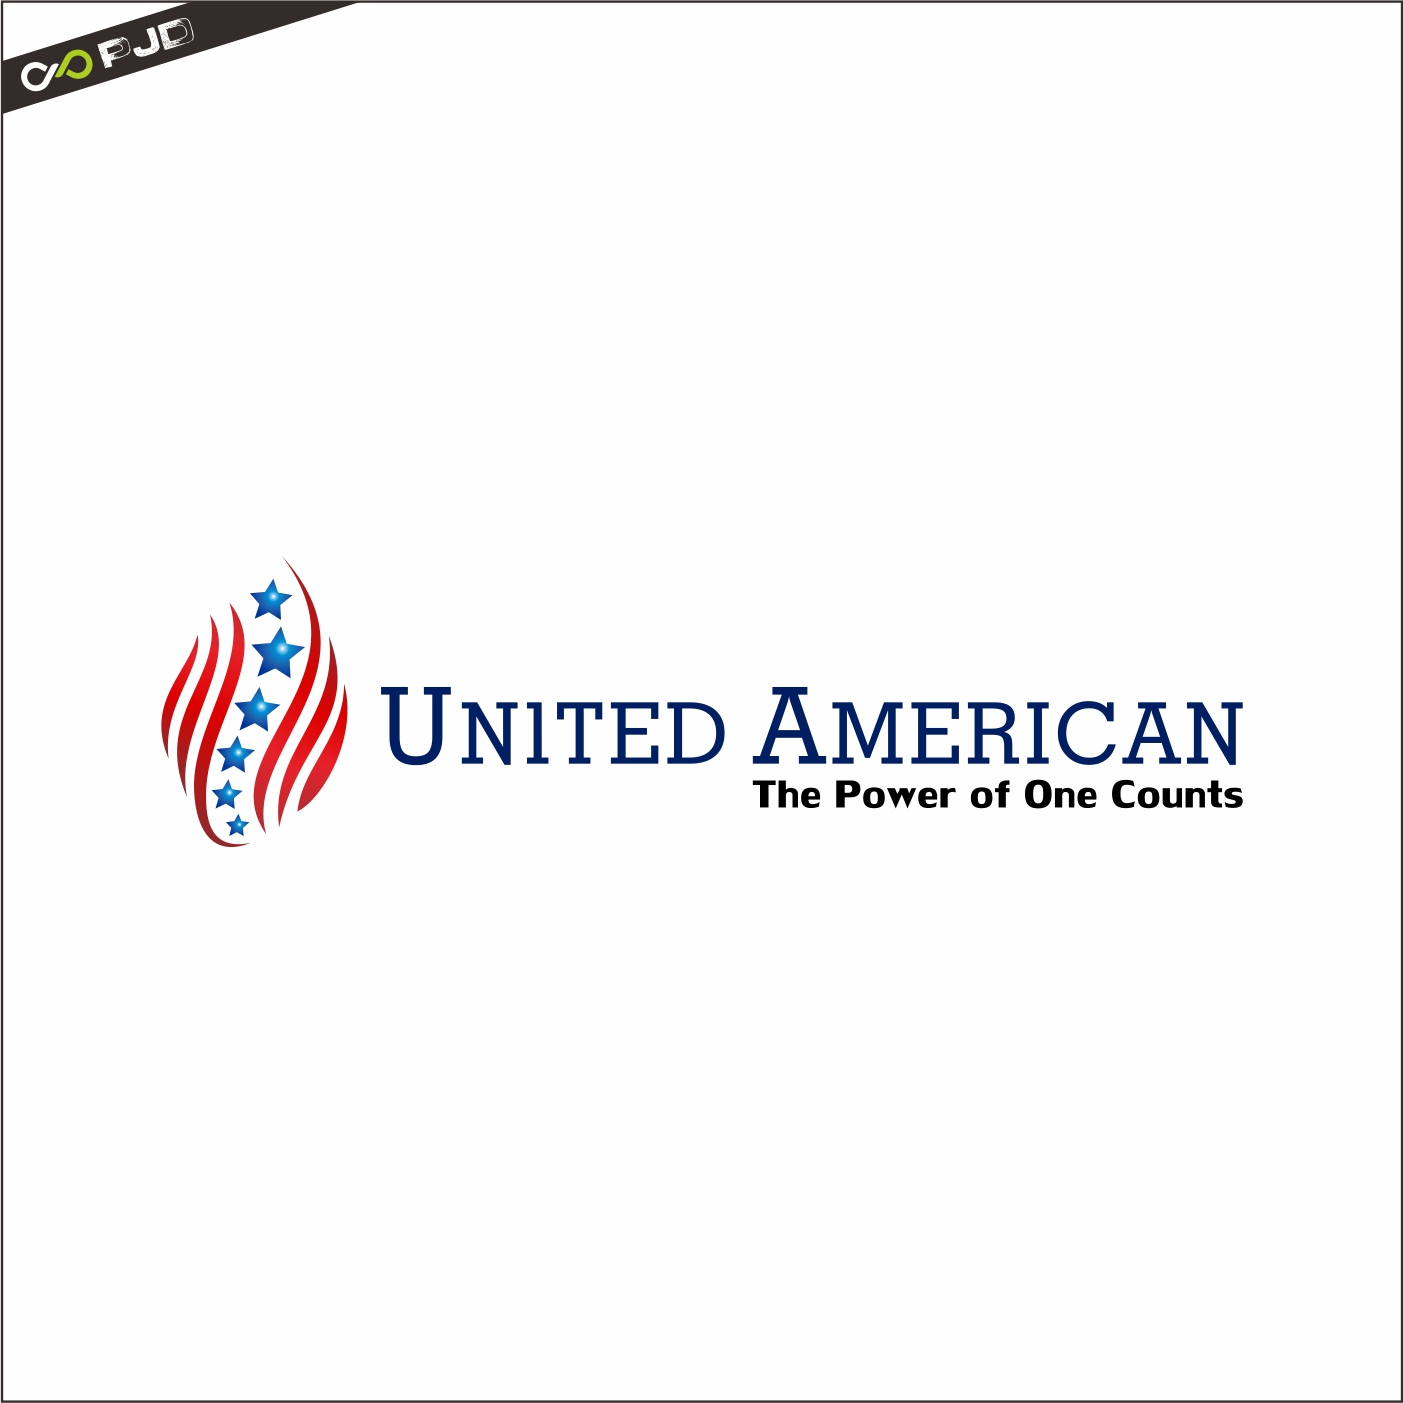 Logo Design by PJD - Entry No. 129 in the Logo Design Contest Creative Logo Design for United Americans.